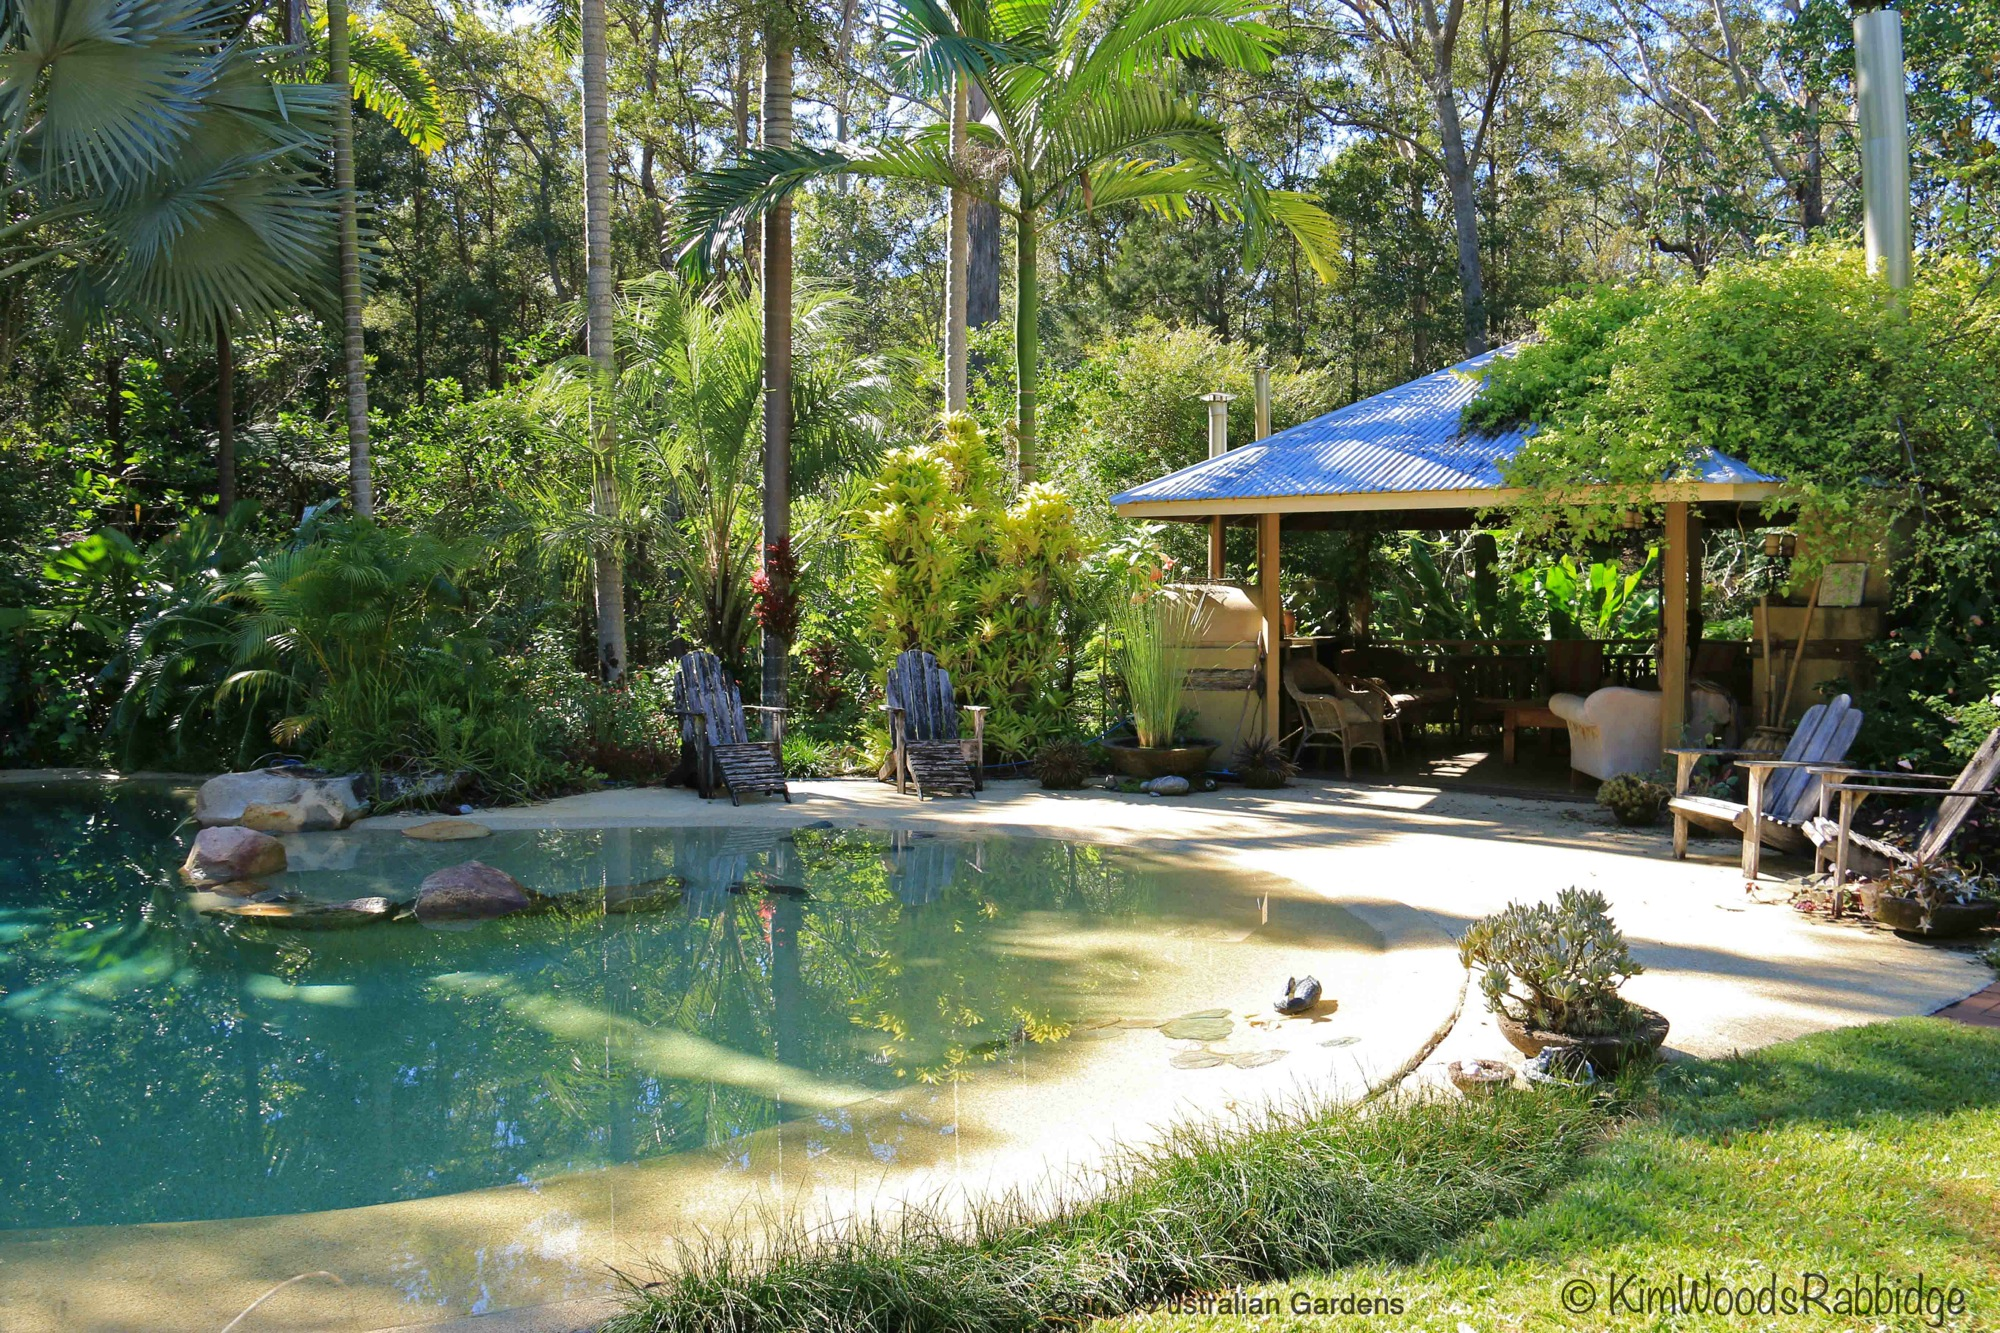 Poolside kimwoodsrabbidge our australian gardens our for Big swimming pools for gardens